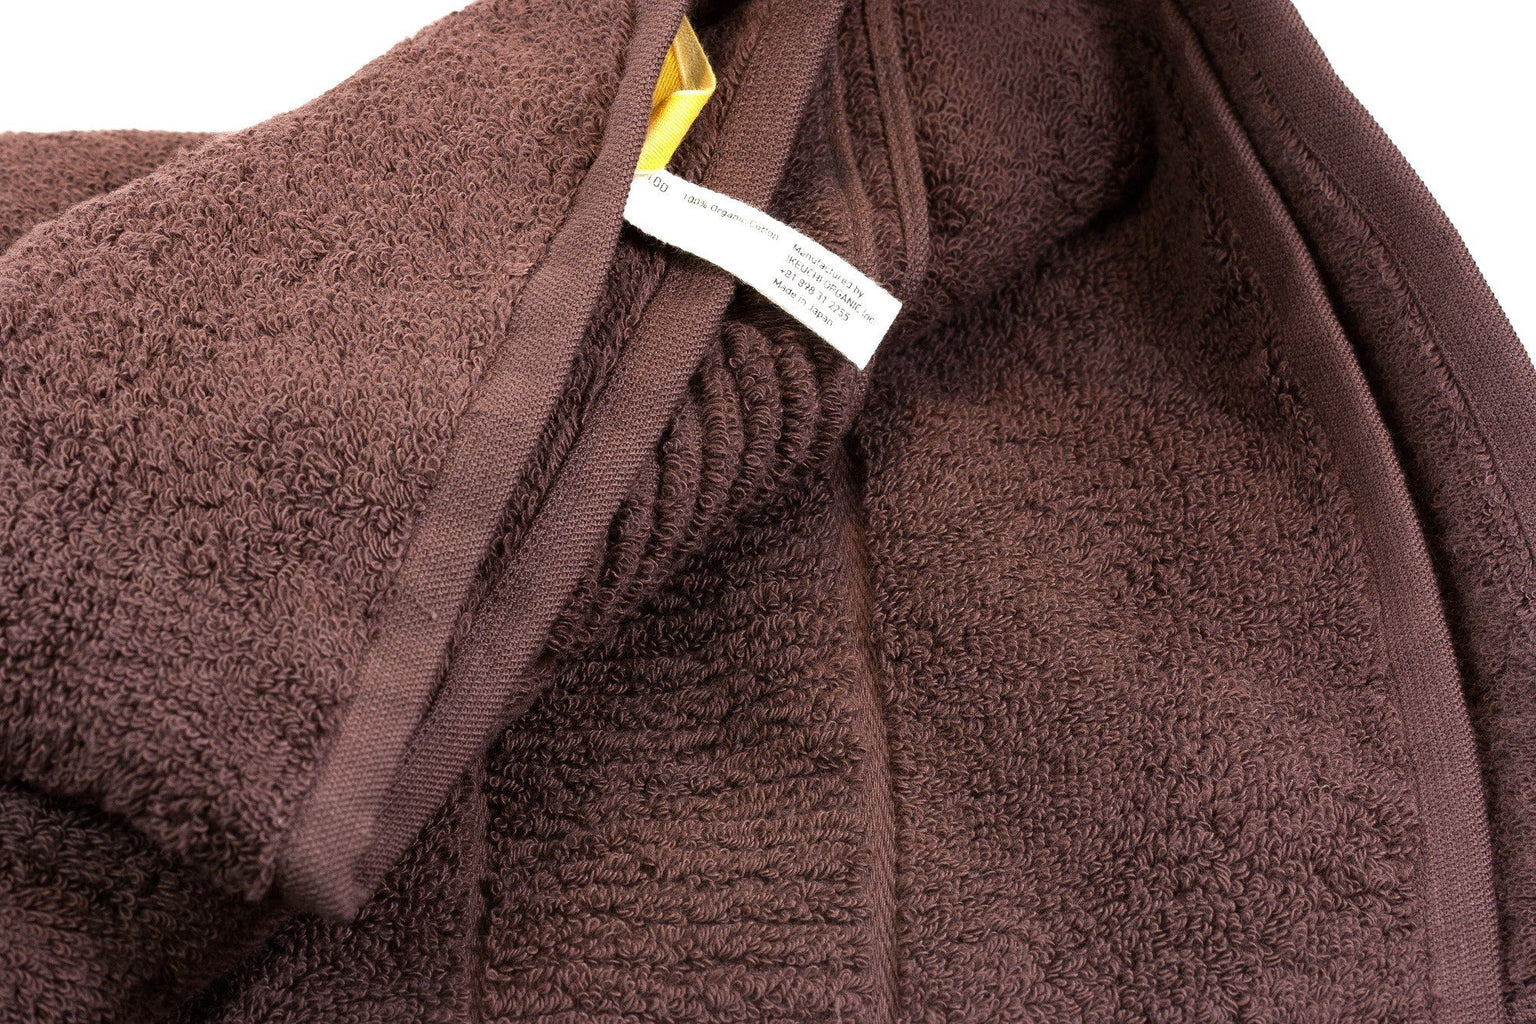 Ikeuchi Organic 316 Cotton Towel, Dark Brown Towel Ikeuchi